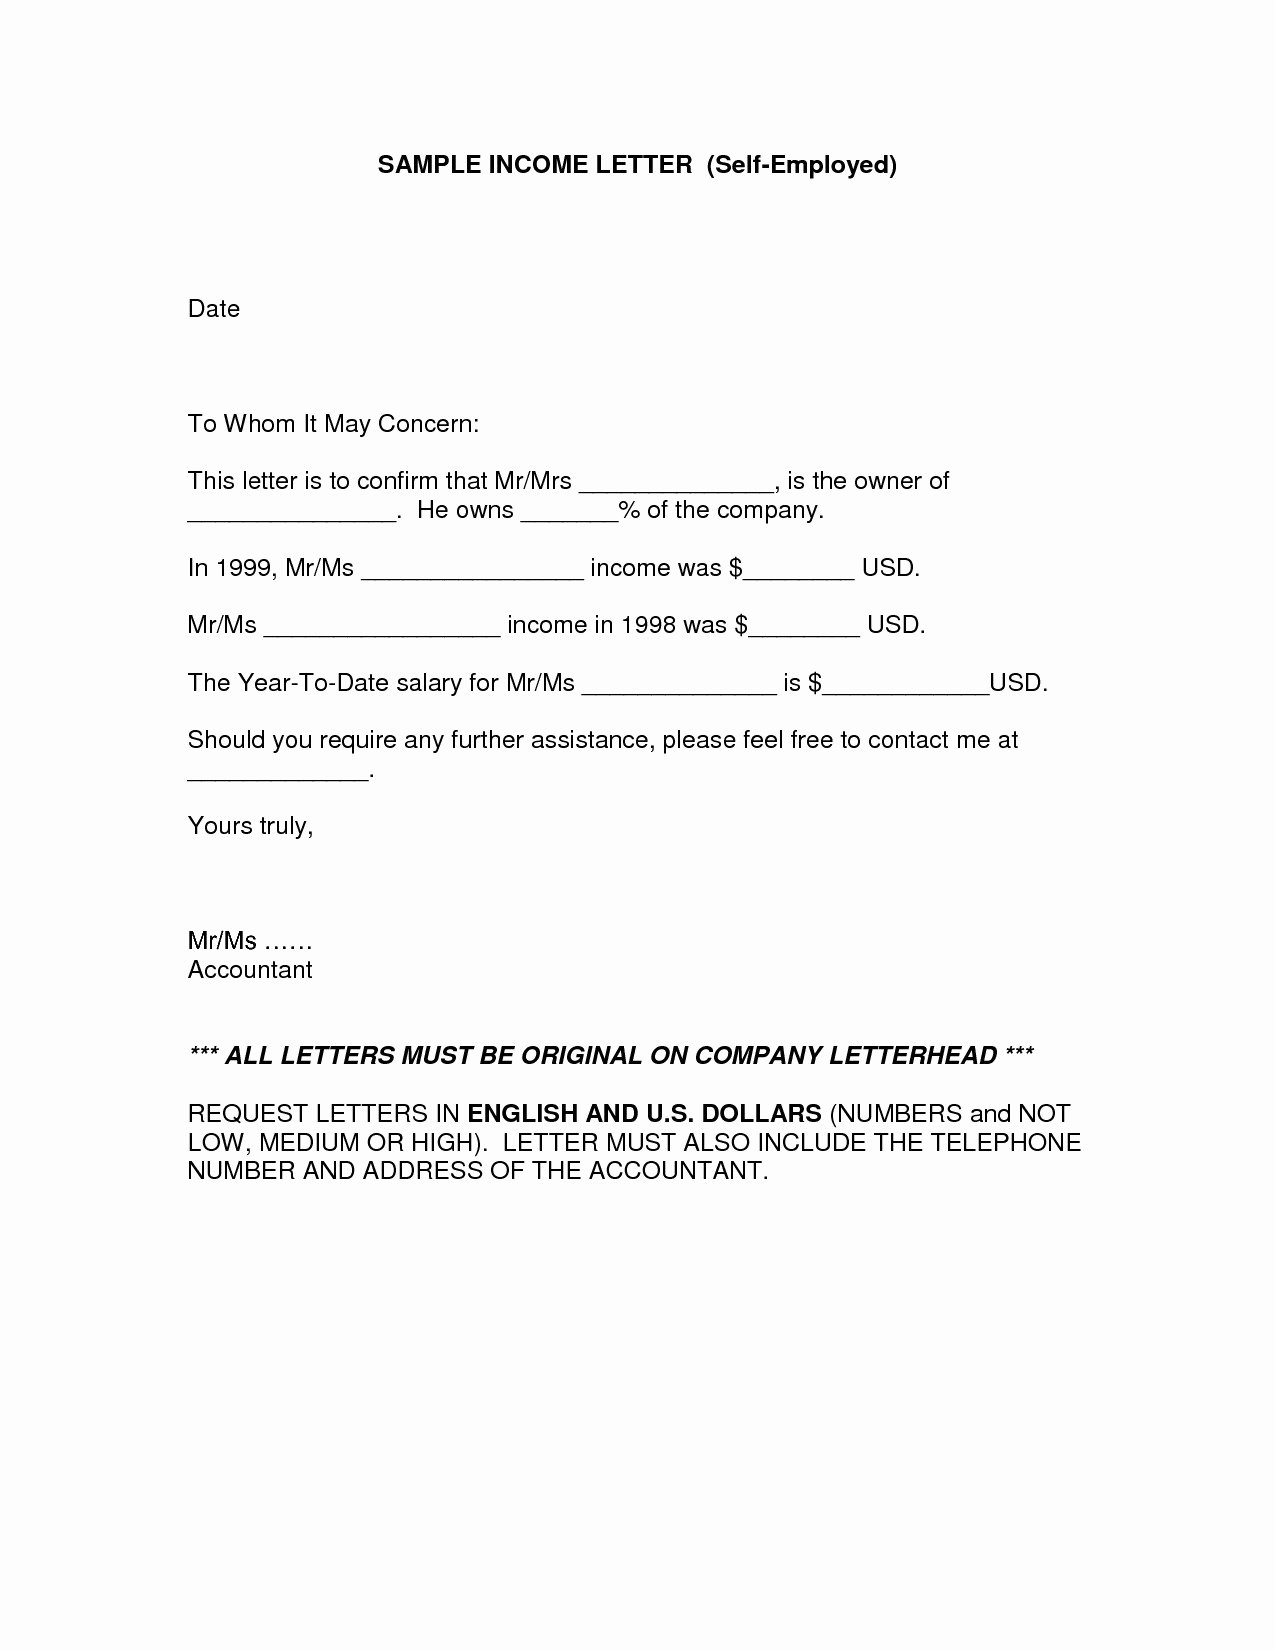 Self Employment Letter Template Elegant Cpa Letter for Self Employed Template Download